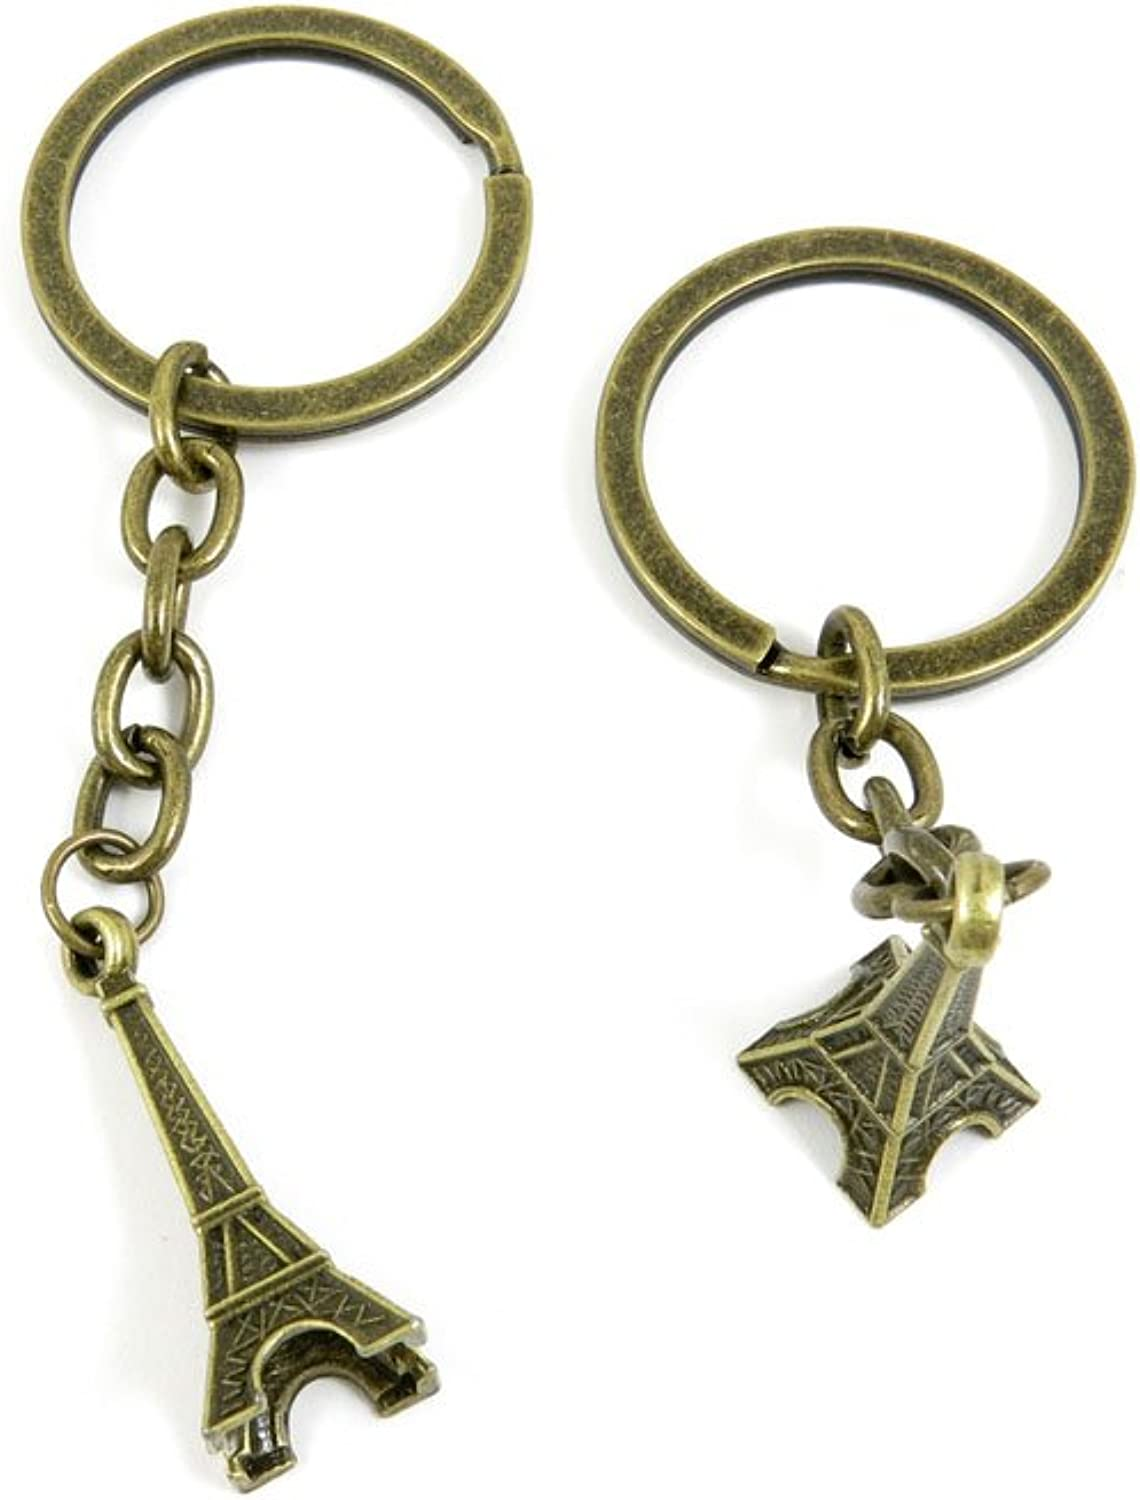 100 PCS Keyrings Keychains Key Ring Chains Tags Jewelry Findings Clasps Buckles Supplies V6BU7 Paris Eiffel Tower